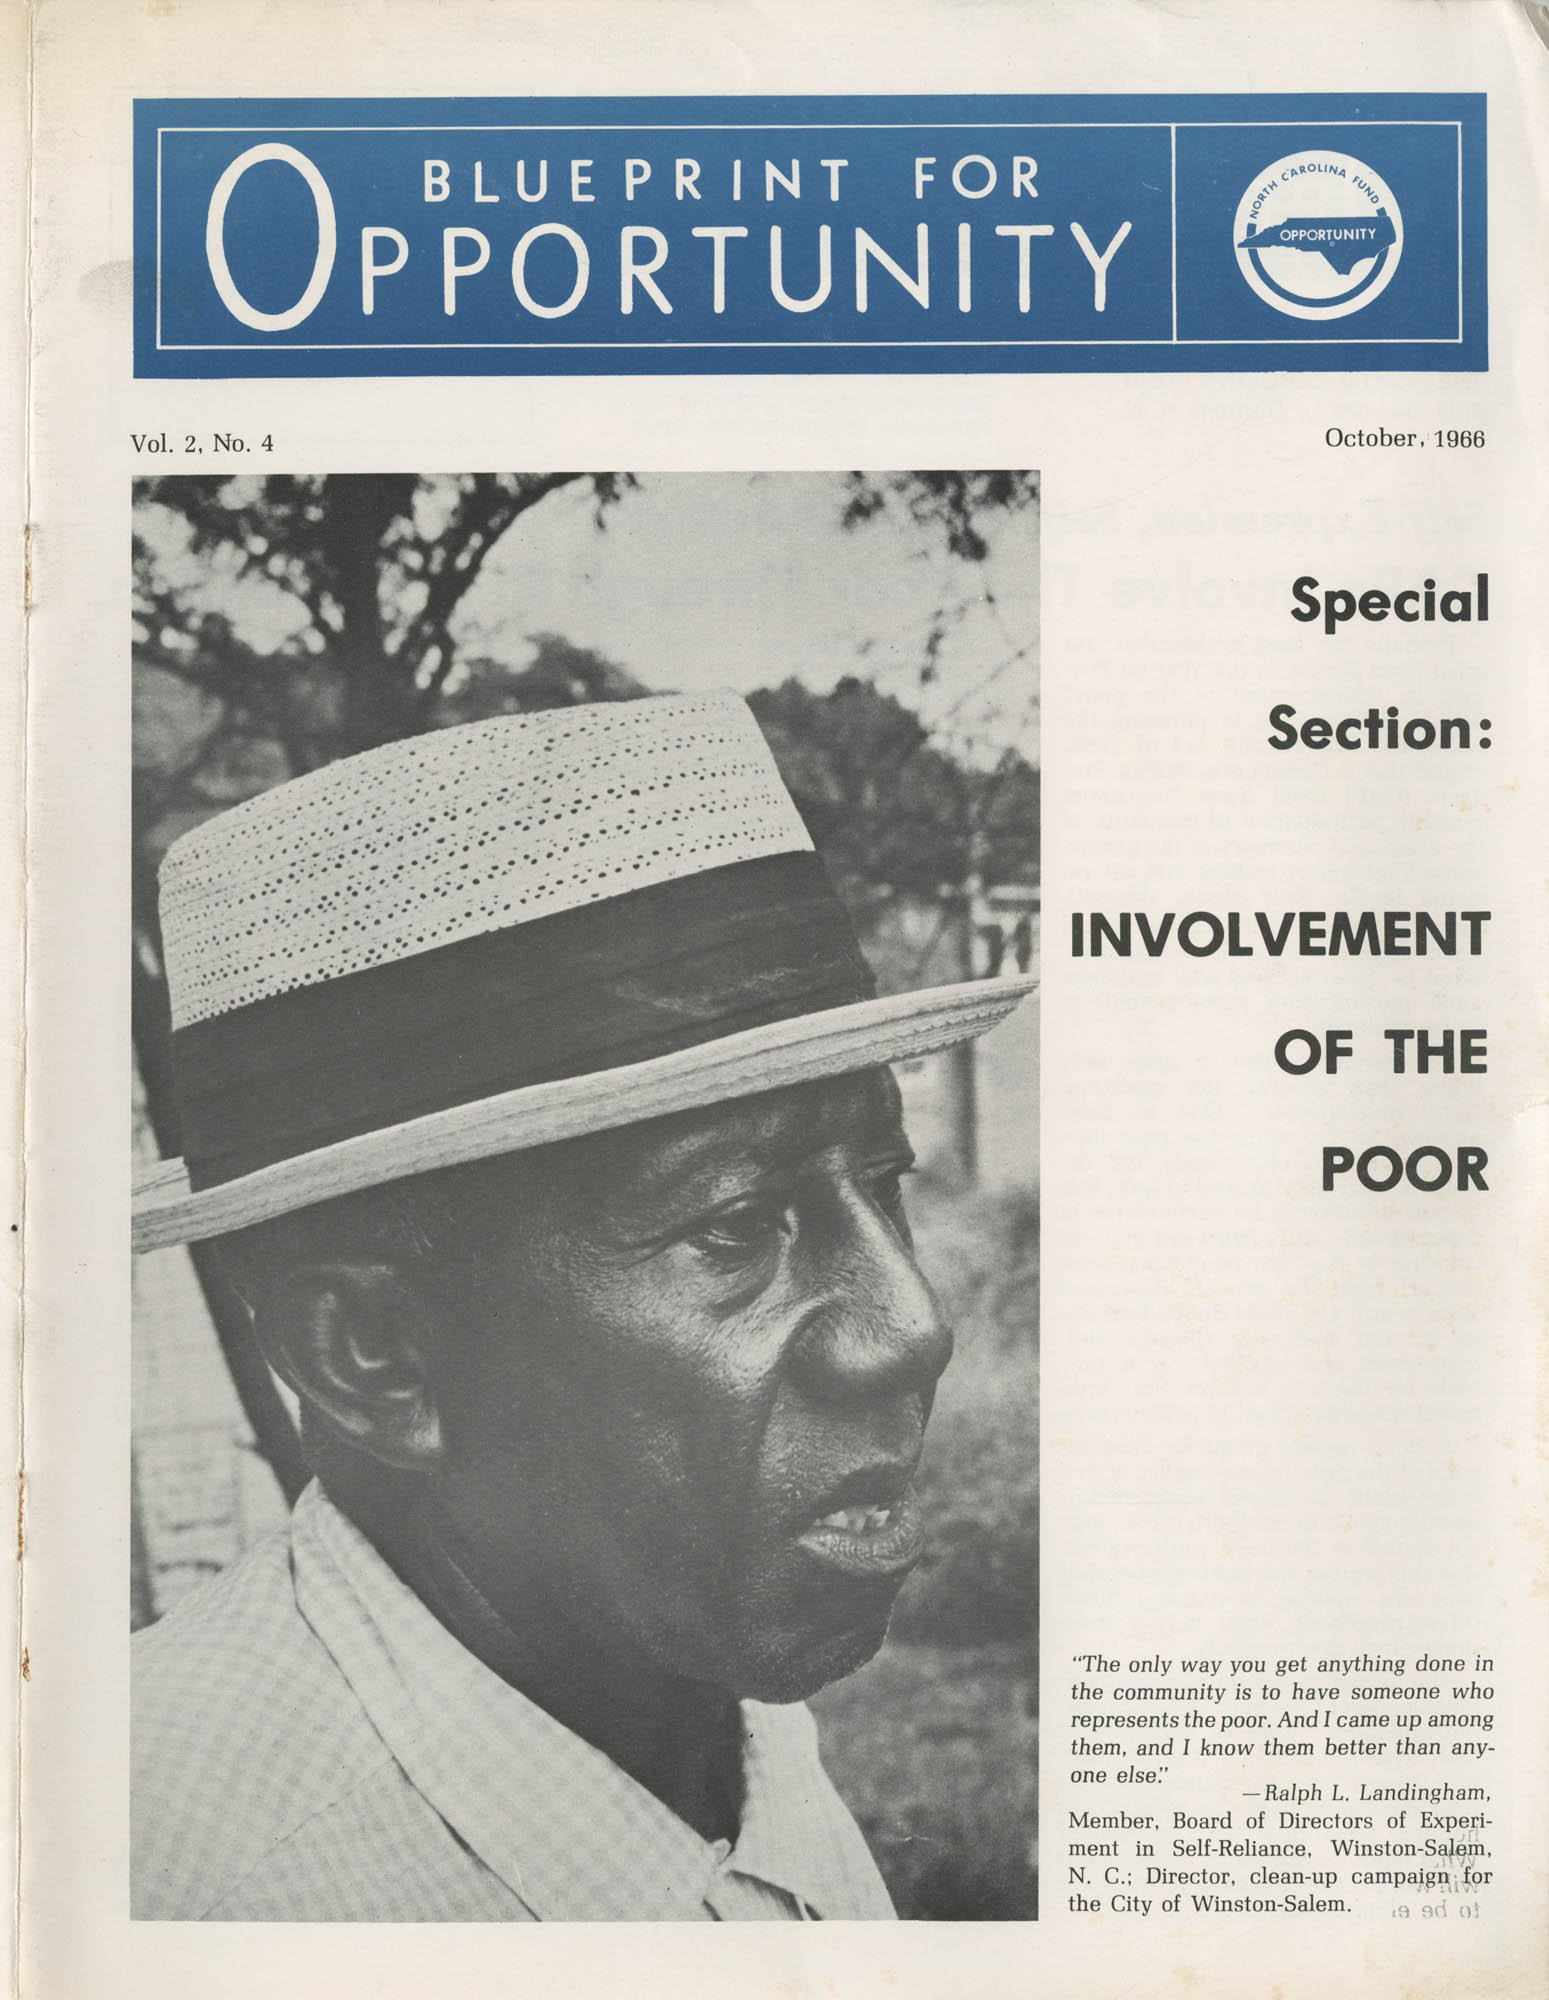 Blueprint for Opportunity, Vol. 2, No. 4